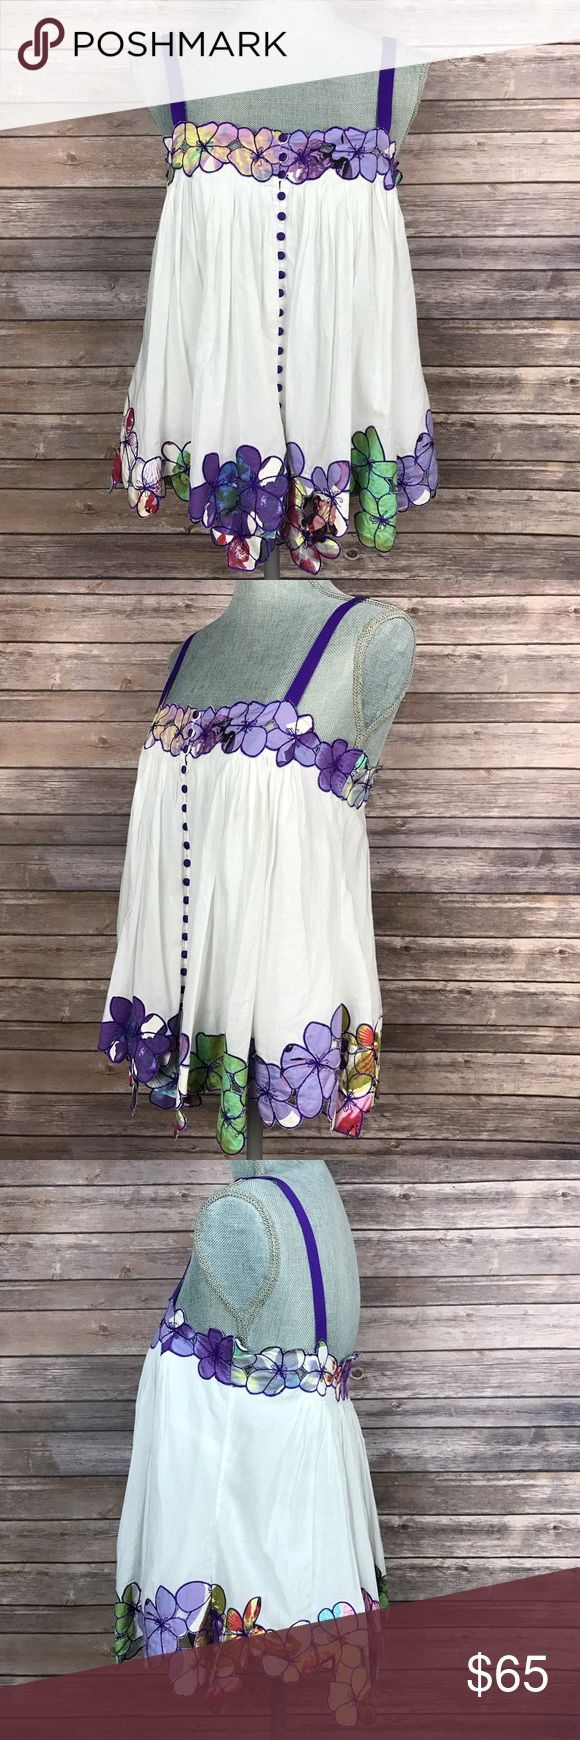 {Catherine Malandrino} Floral Embroidered Blouse Sleeveless. Button-down front. Lined. 100% cotton. RN# 98967. Condition: Excellent. Lightly worn. Catherine Malandrino Tops Blouses